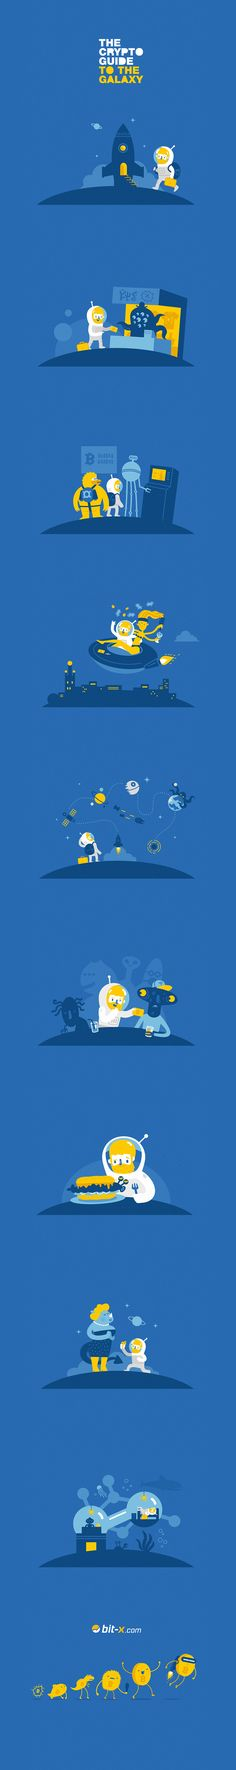 The Crypto Guide to the Galaxy on Behance